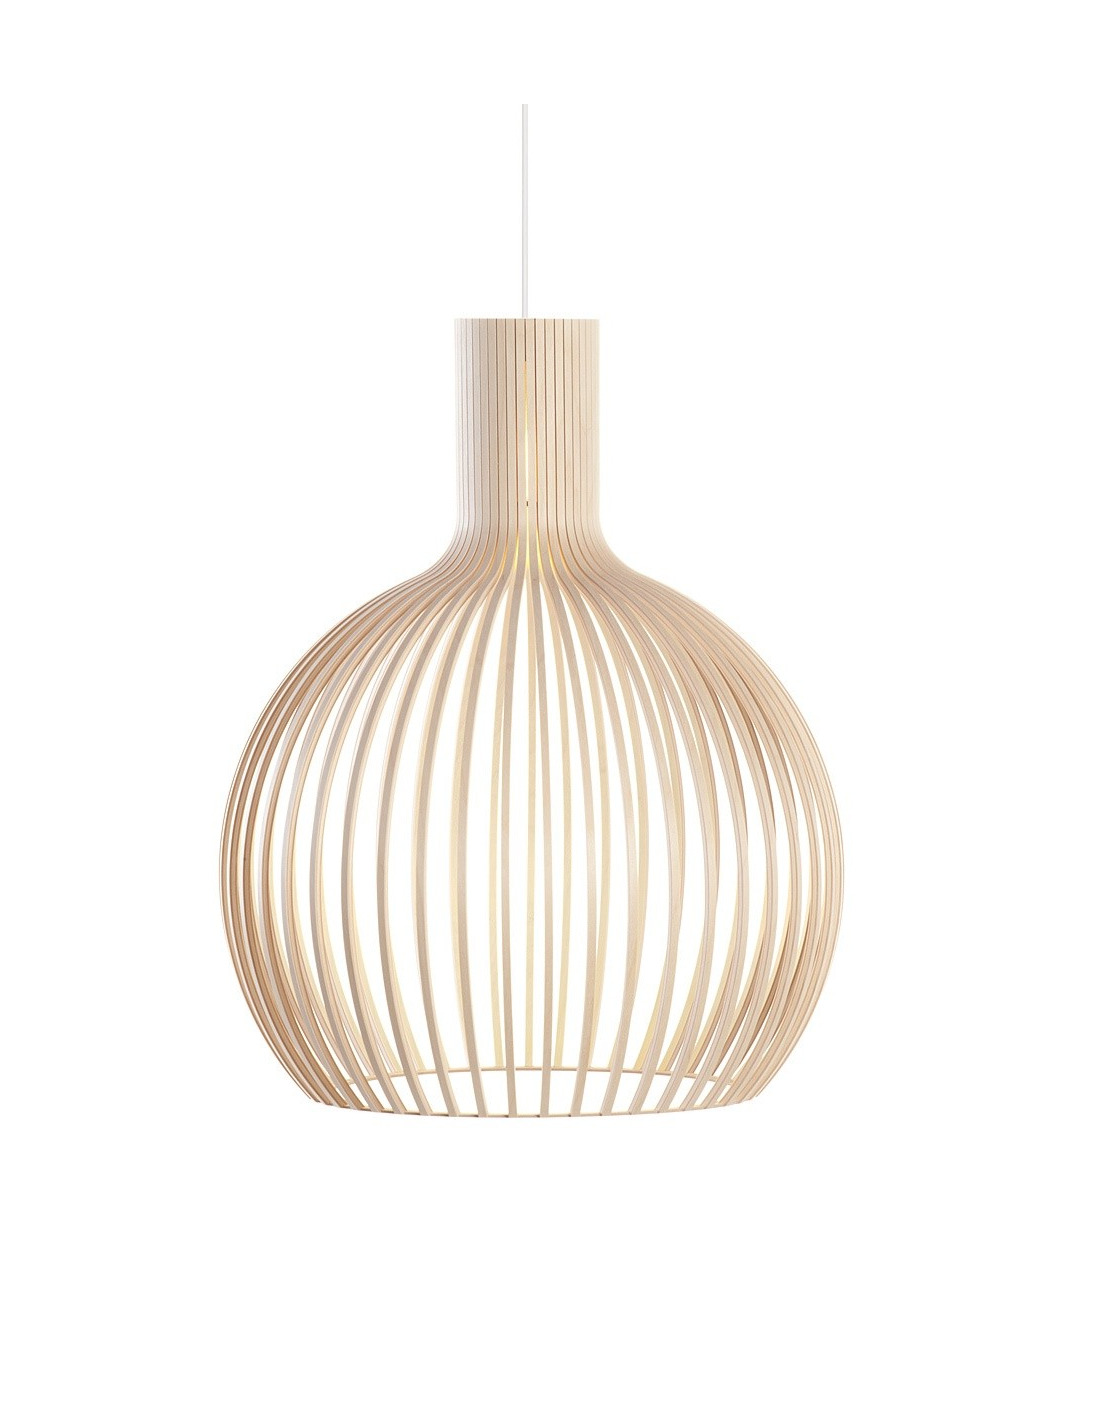 Suspension Design Bois > Suspension au design scandinave Octo 4240 en bois naturel Otoko